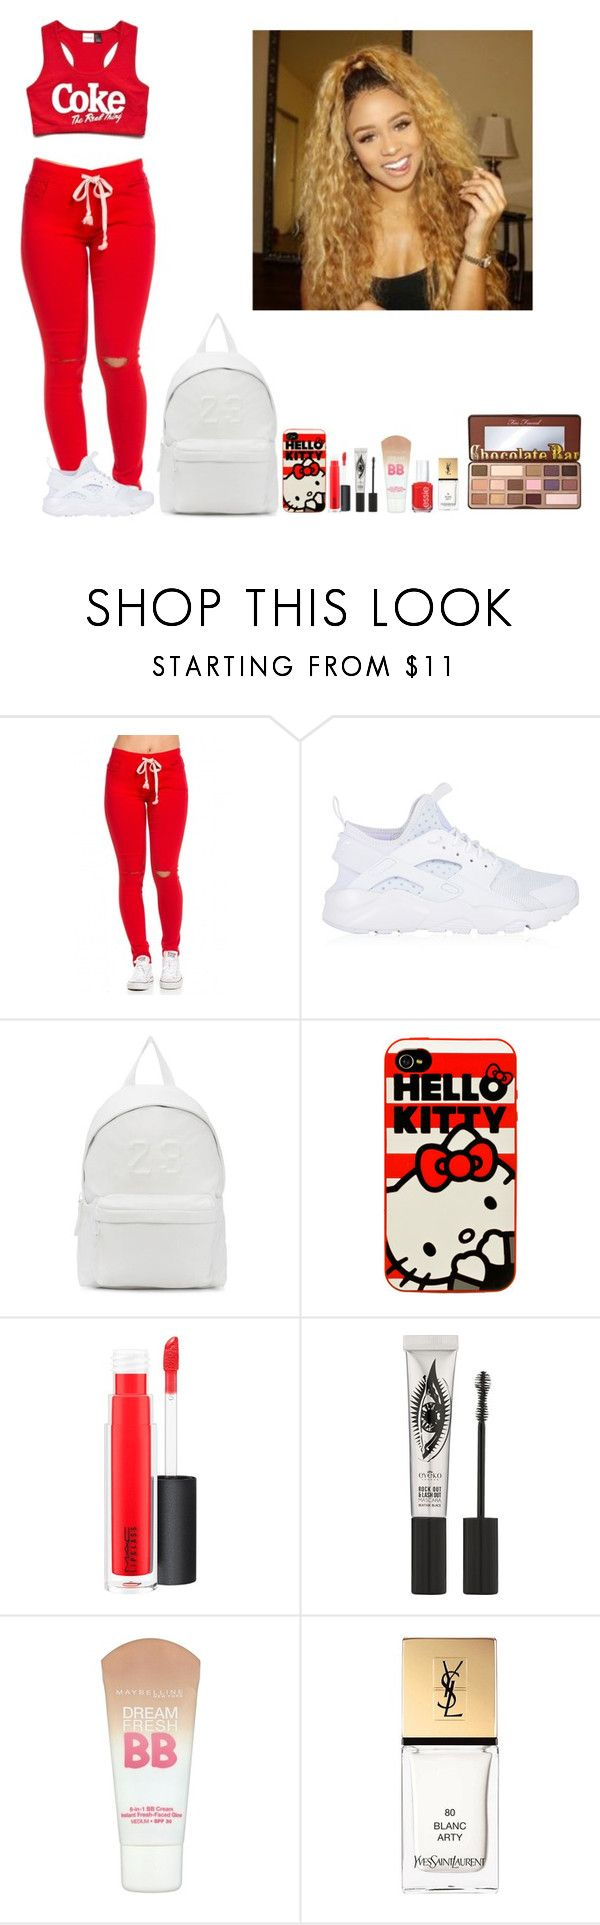 """""""-Glo Queen"""" by thegloup-reina on Polyvore featuring NIKE, Joshua's, Hello Kitty, MAC Cosmetics, Eyeko, Maybelline, Yves Saint Laurent, Too Faced Cosmetics and Anaïs"""